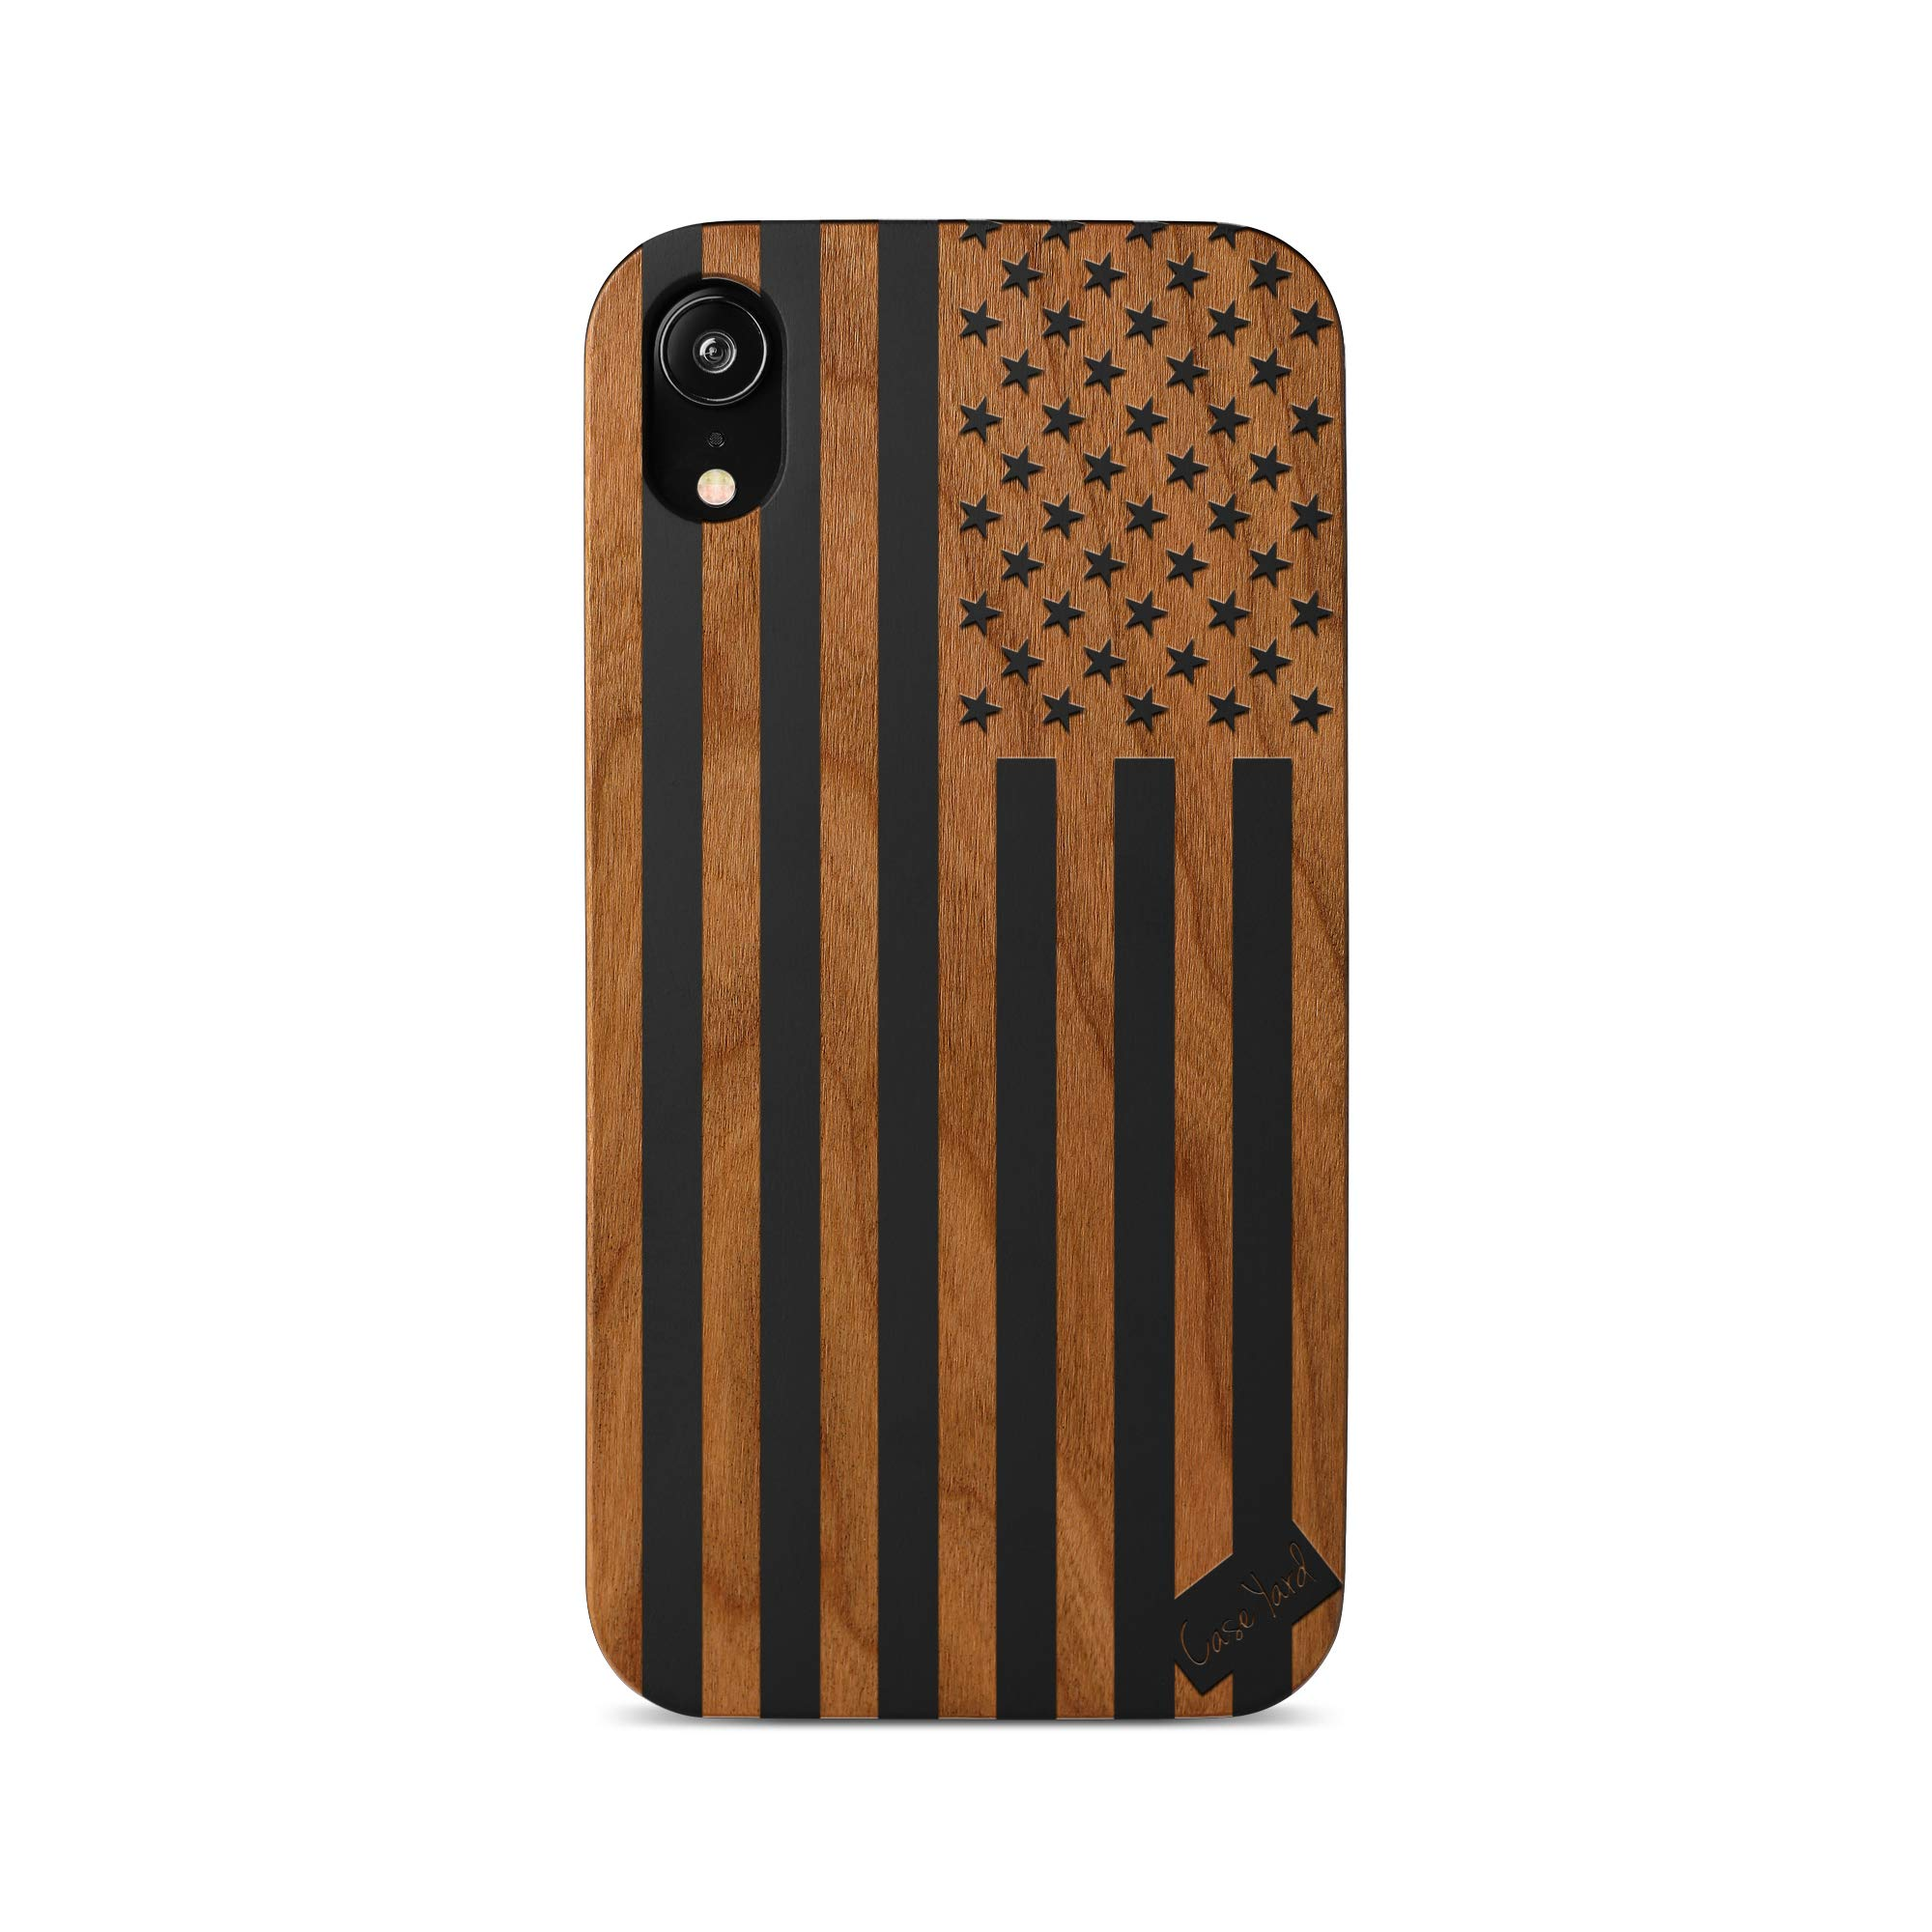 iPhone 11 Pro Case by Case Yard Fit for iPhone 11 Pro 5.8-Inch [ 2019 Release ] Shock-Absorption iPhone 11 Pro Phone Cover Wood Black iPhone 11 Pro Cases American Flag